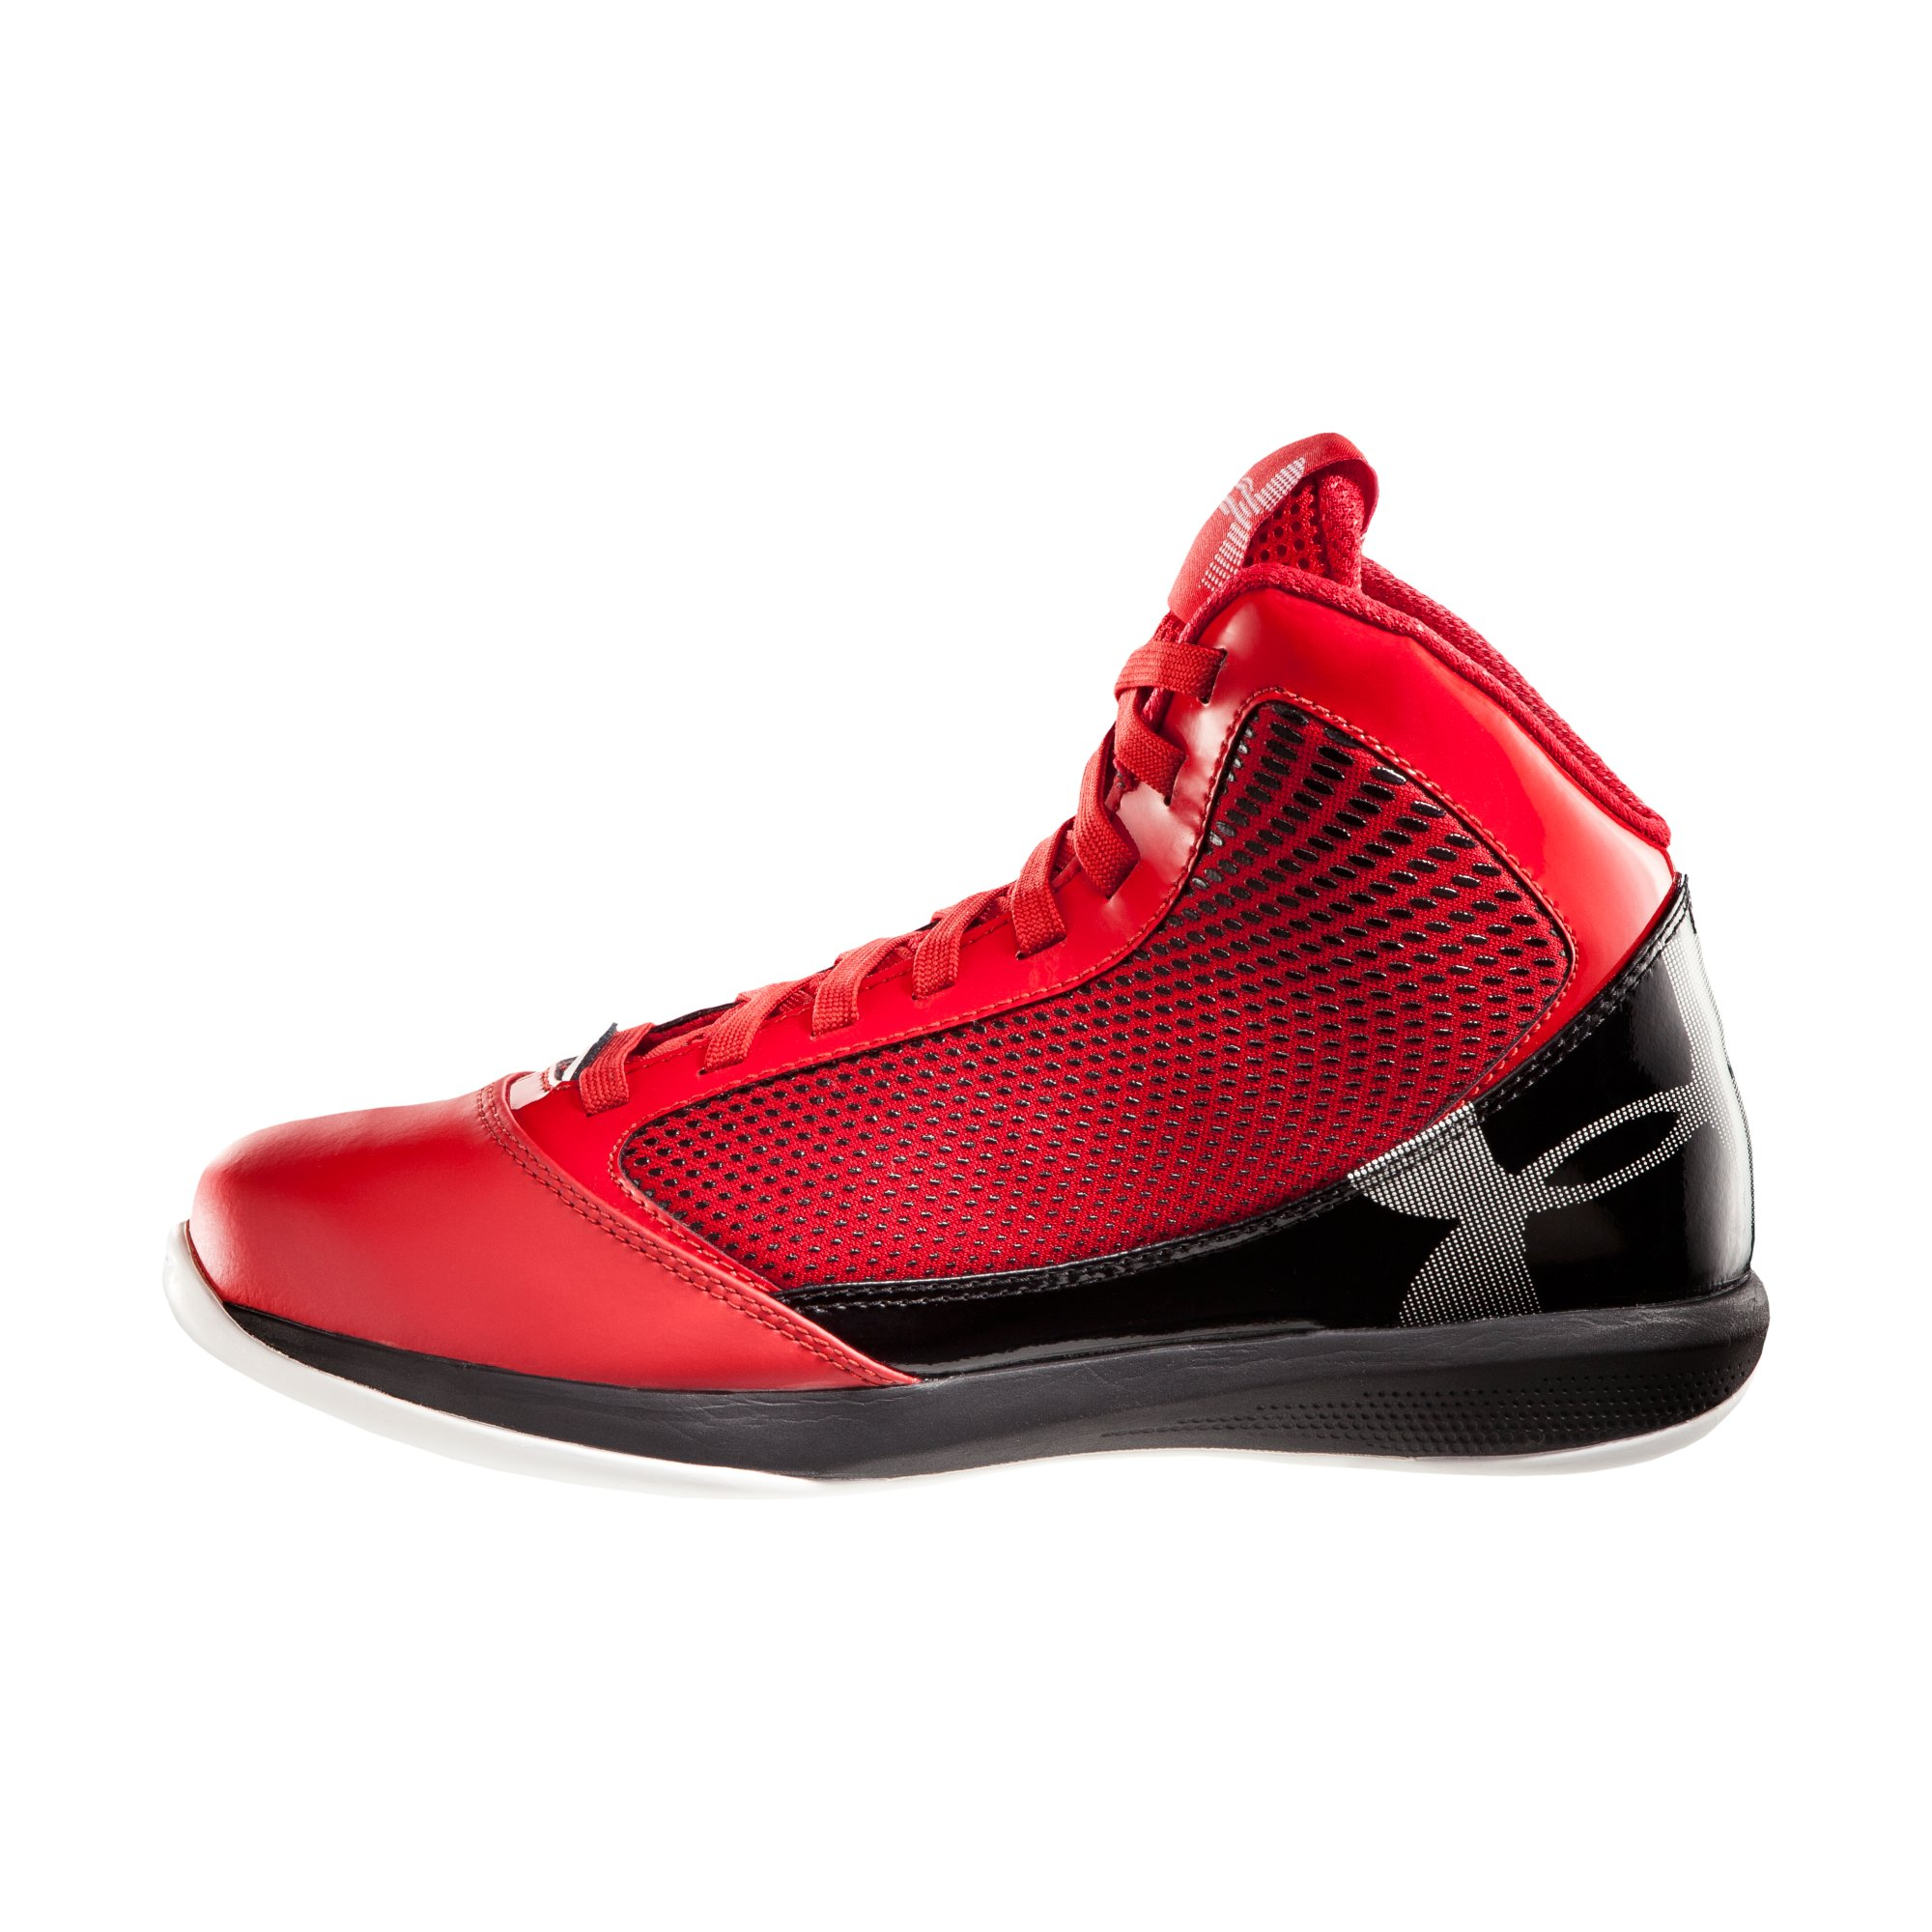 Under Armour Shoes White And Red